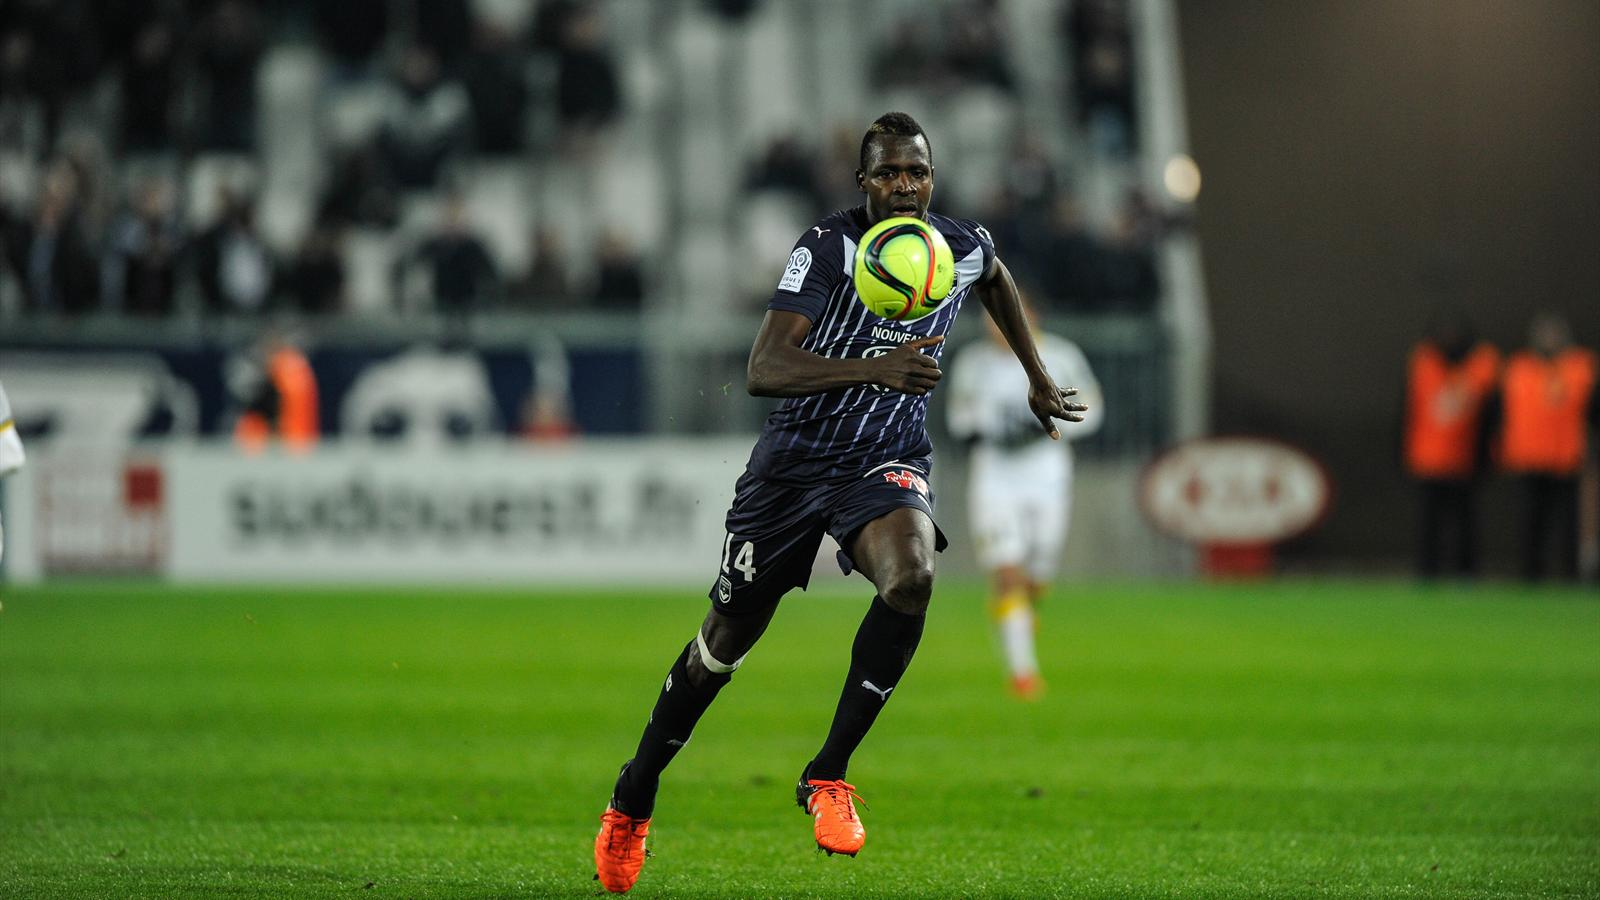 chieck diabat de retour en ligue 1 metz football ligue 1 nouvelles. Black Bedroom Furniture Sets. Home Design Ideas